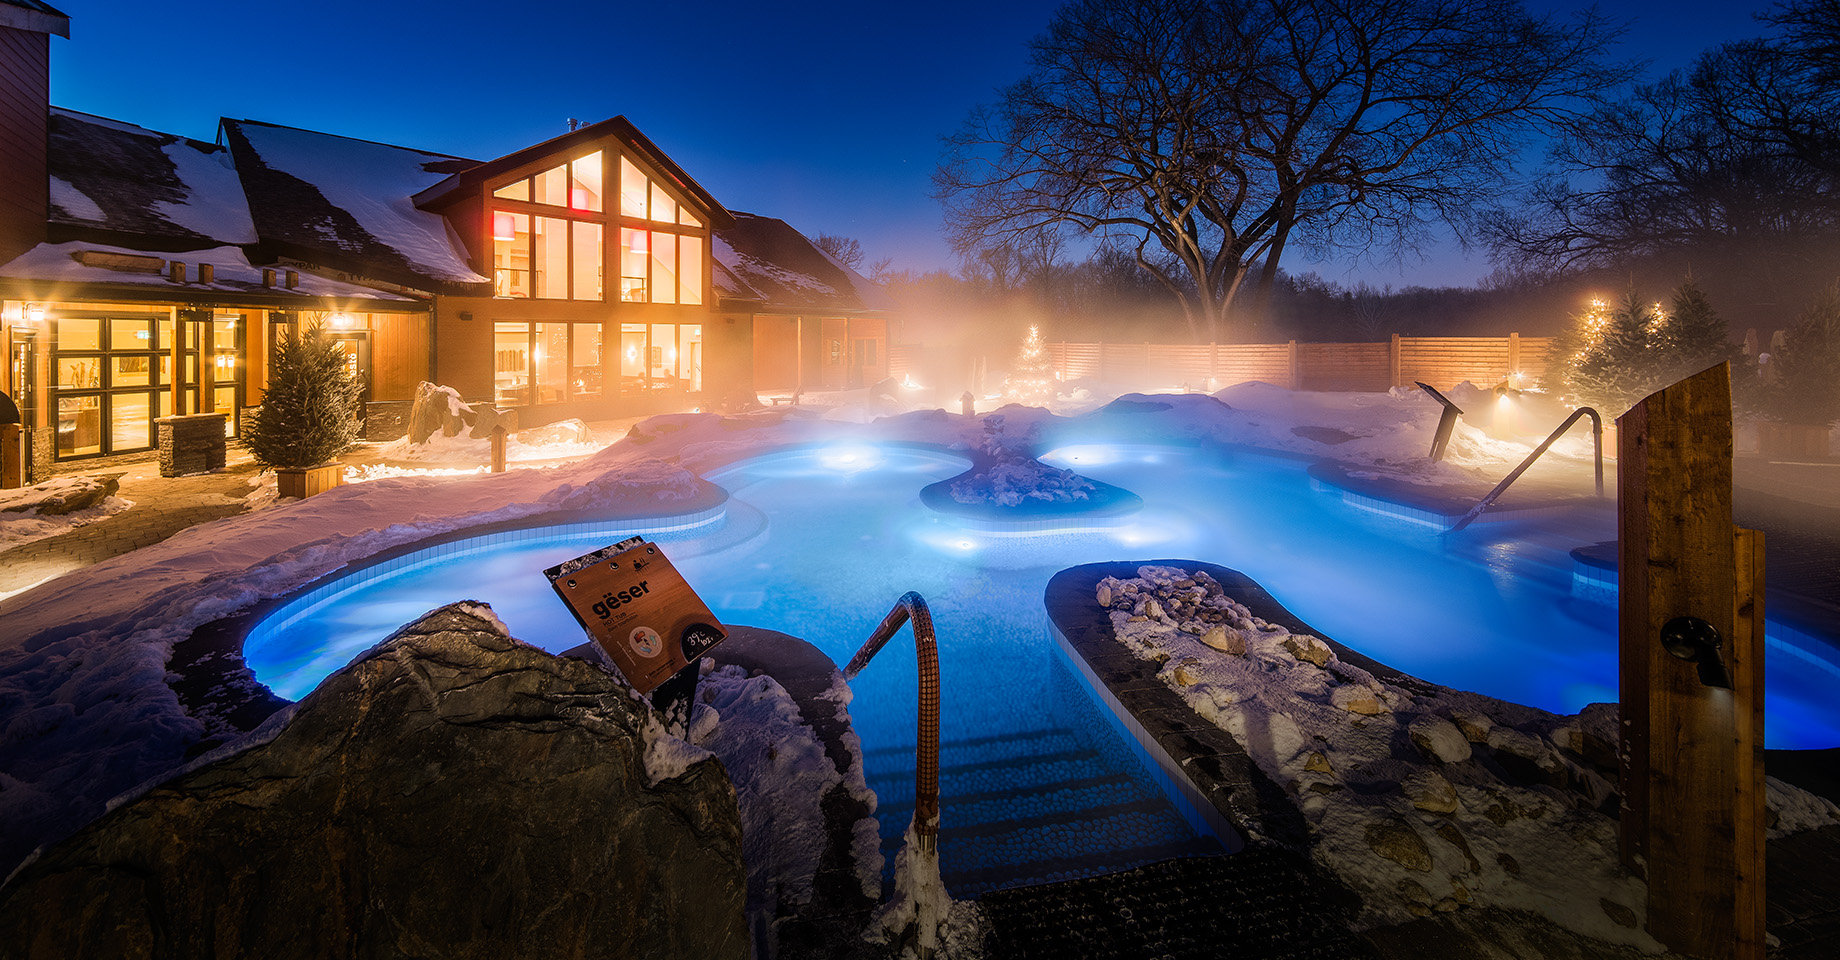 The large outdoor pool-spa at Thermea by Nordik Spa-Nature